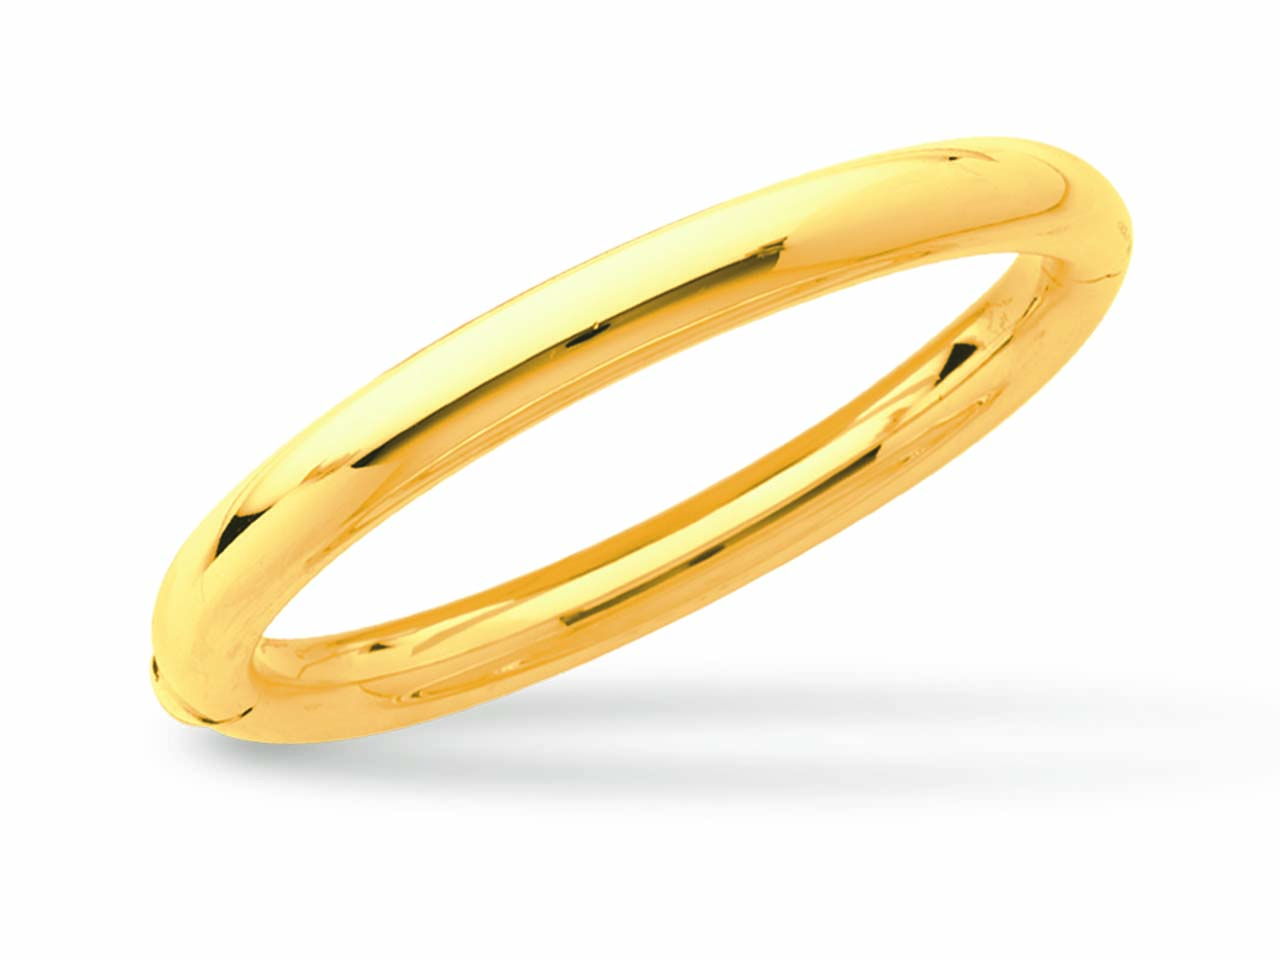 Jonc ouvrant, Or jaune 18k, fil rond 7 mm, forme Ovale. Diam 63 mm